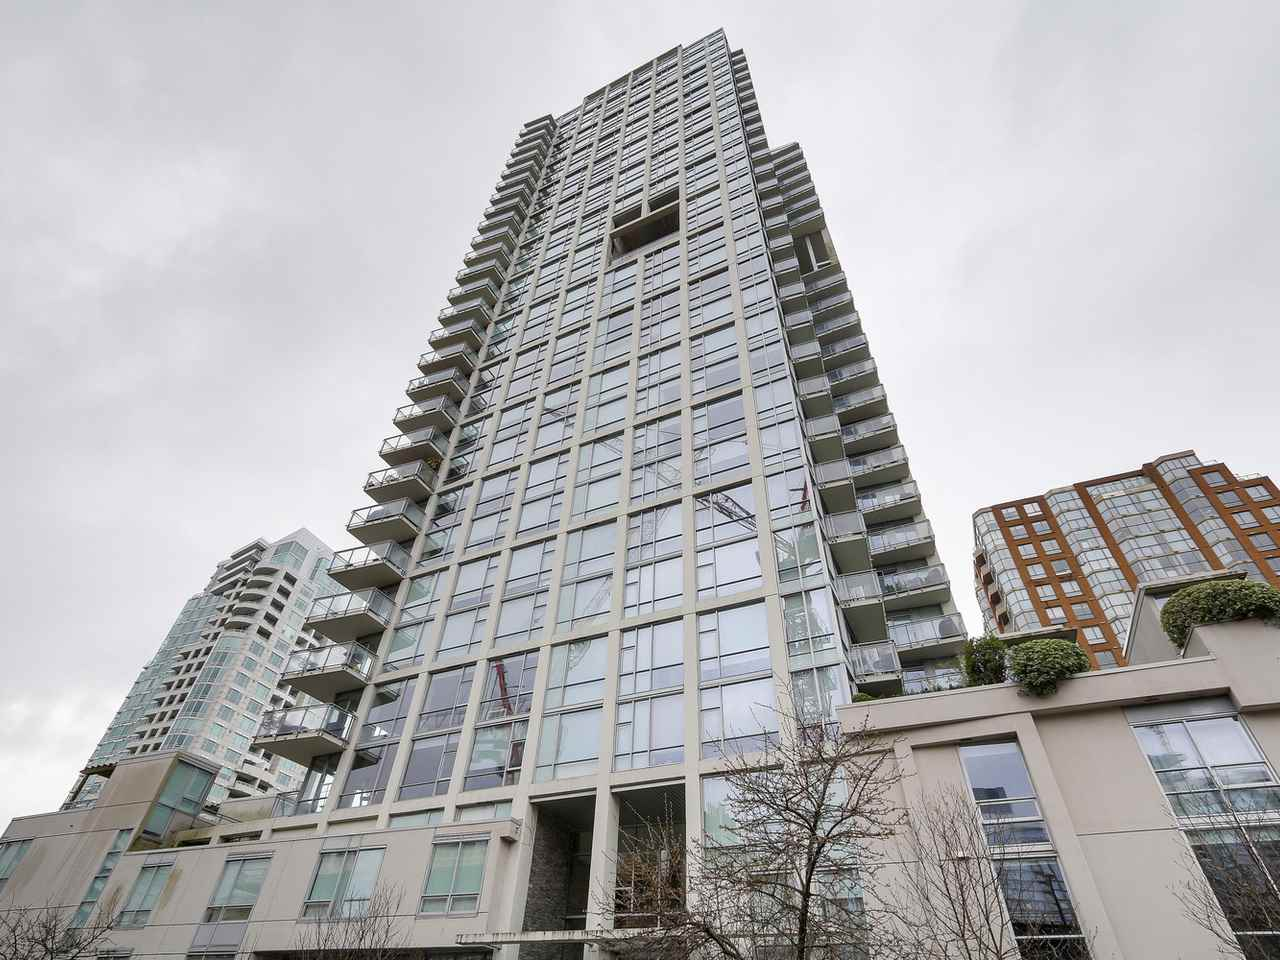 Main Photo: 401 1455 HOWE STREET in Vancouver: Yaletown Condo for sale (Vancouver West)  : MLS®# R2145939